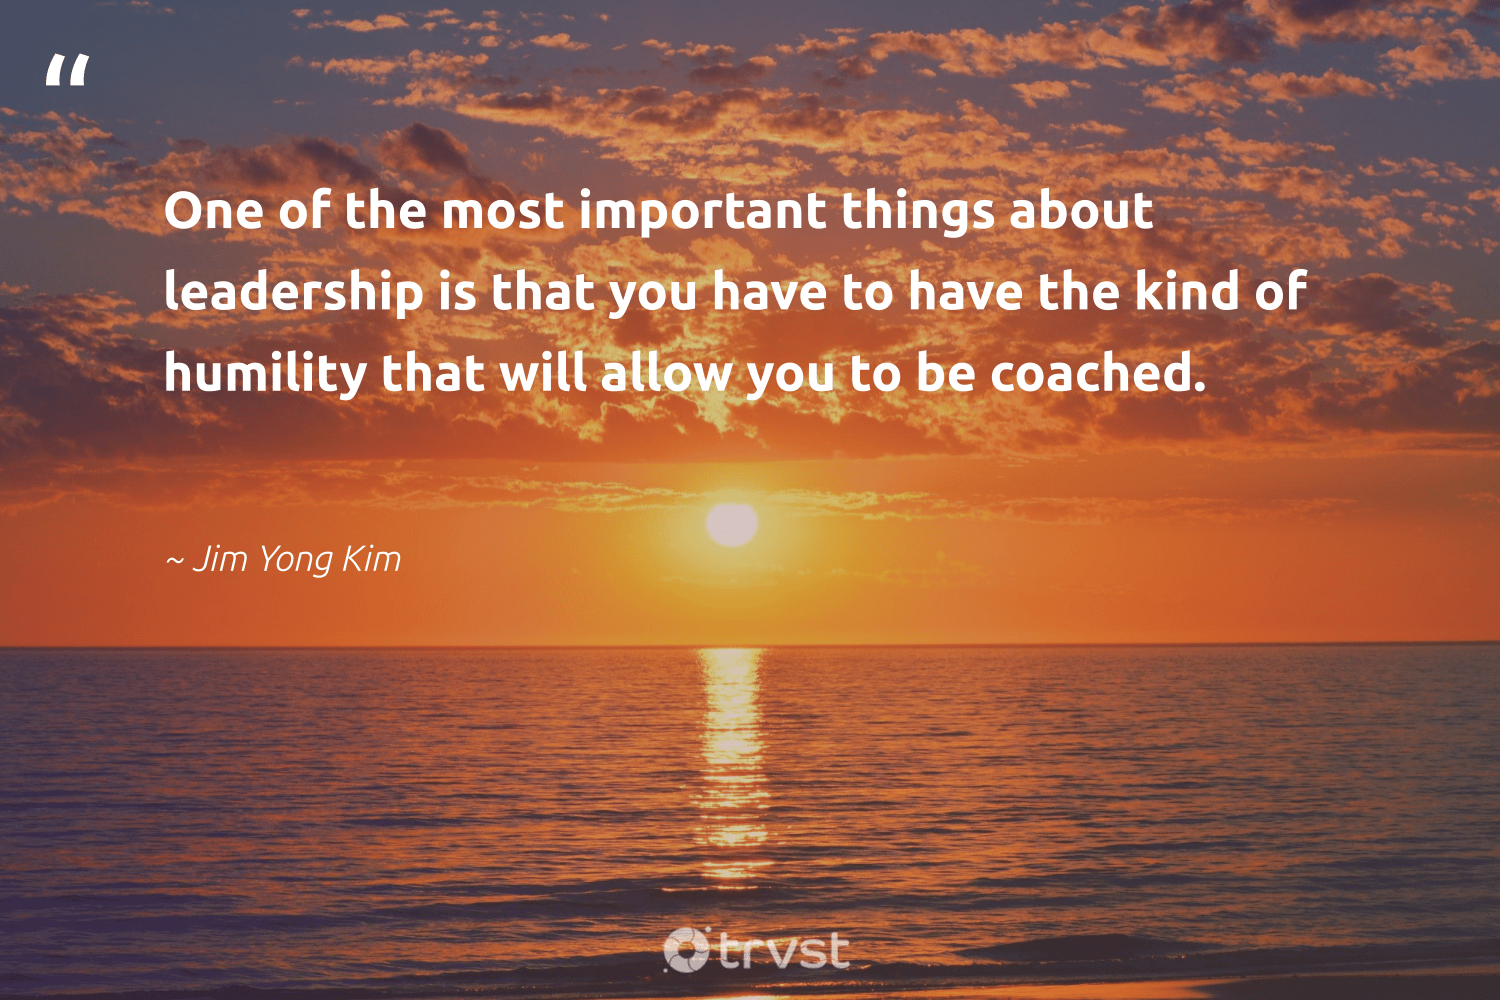 """One of the most important things about leadership is that you have to have the kind of humility that will allow you to be coached.""  - Jim Yong Kim #trvst #quotes #leadership #leadershipdevelopment #futureofwork #begreat #bethechange #leadershipskills #nevergiveup #softskills #gogreen #leadershipqualities"